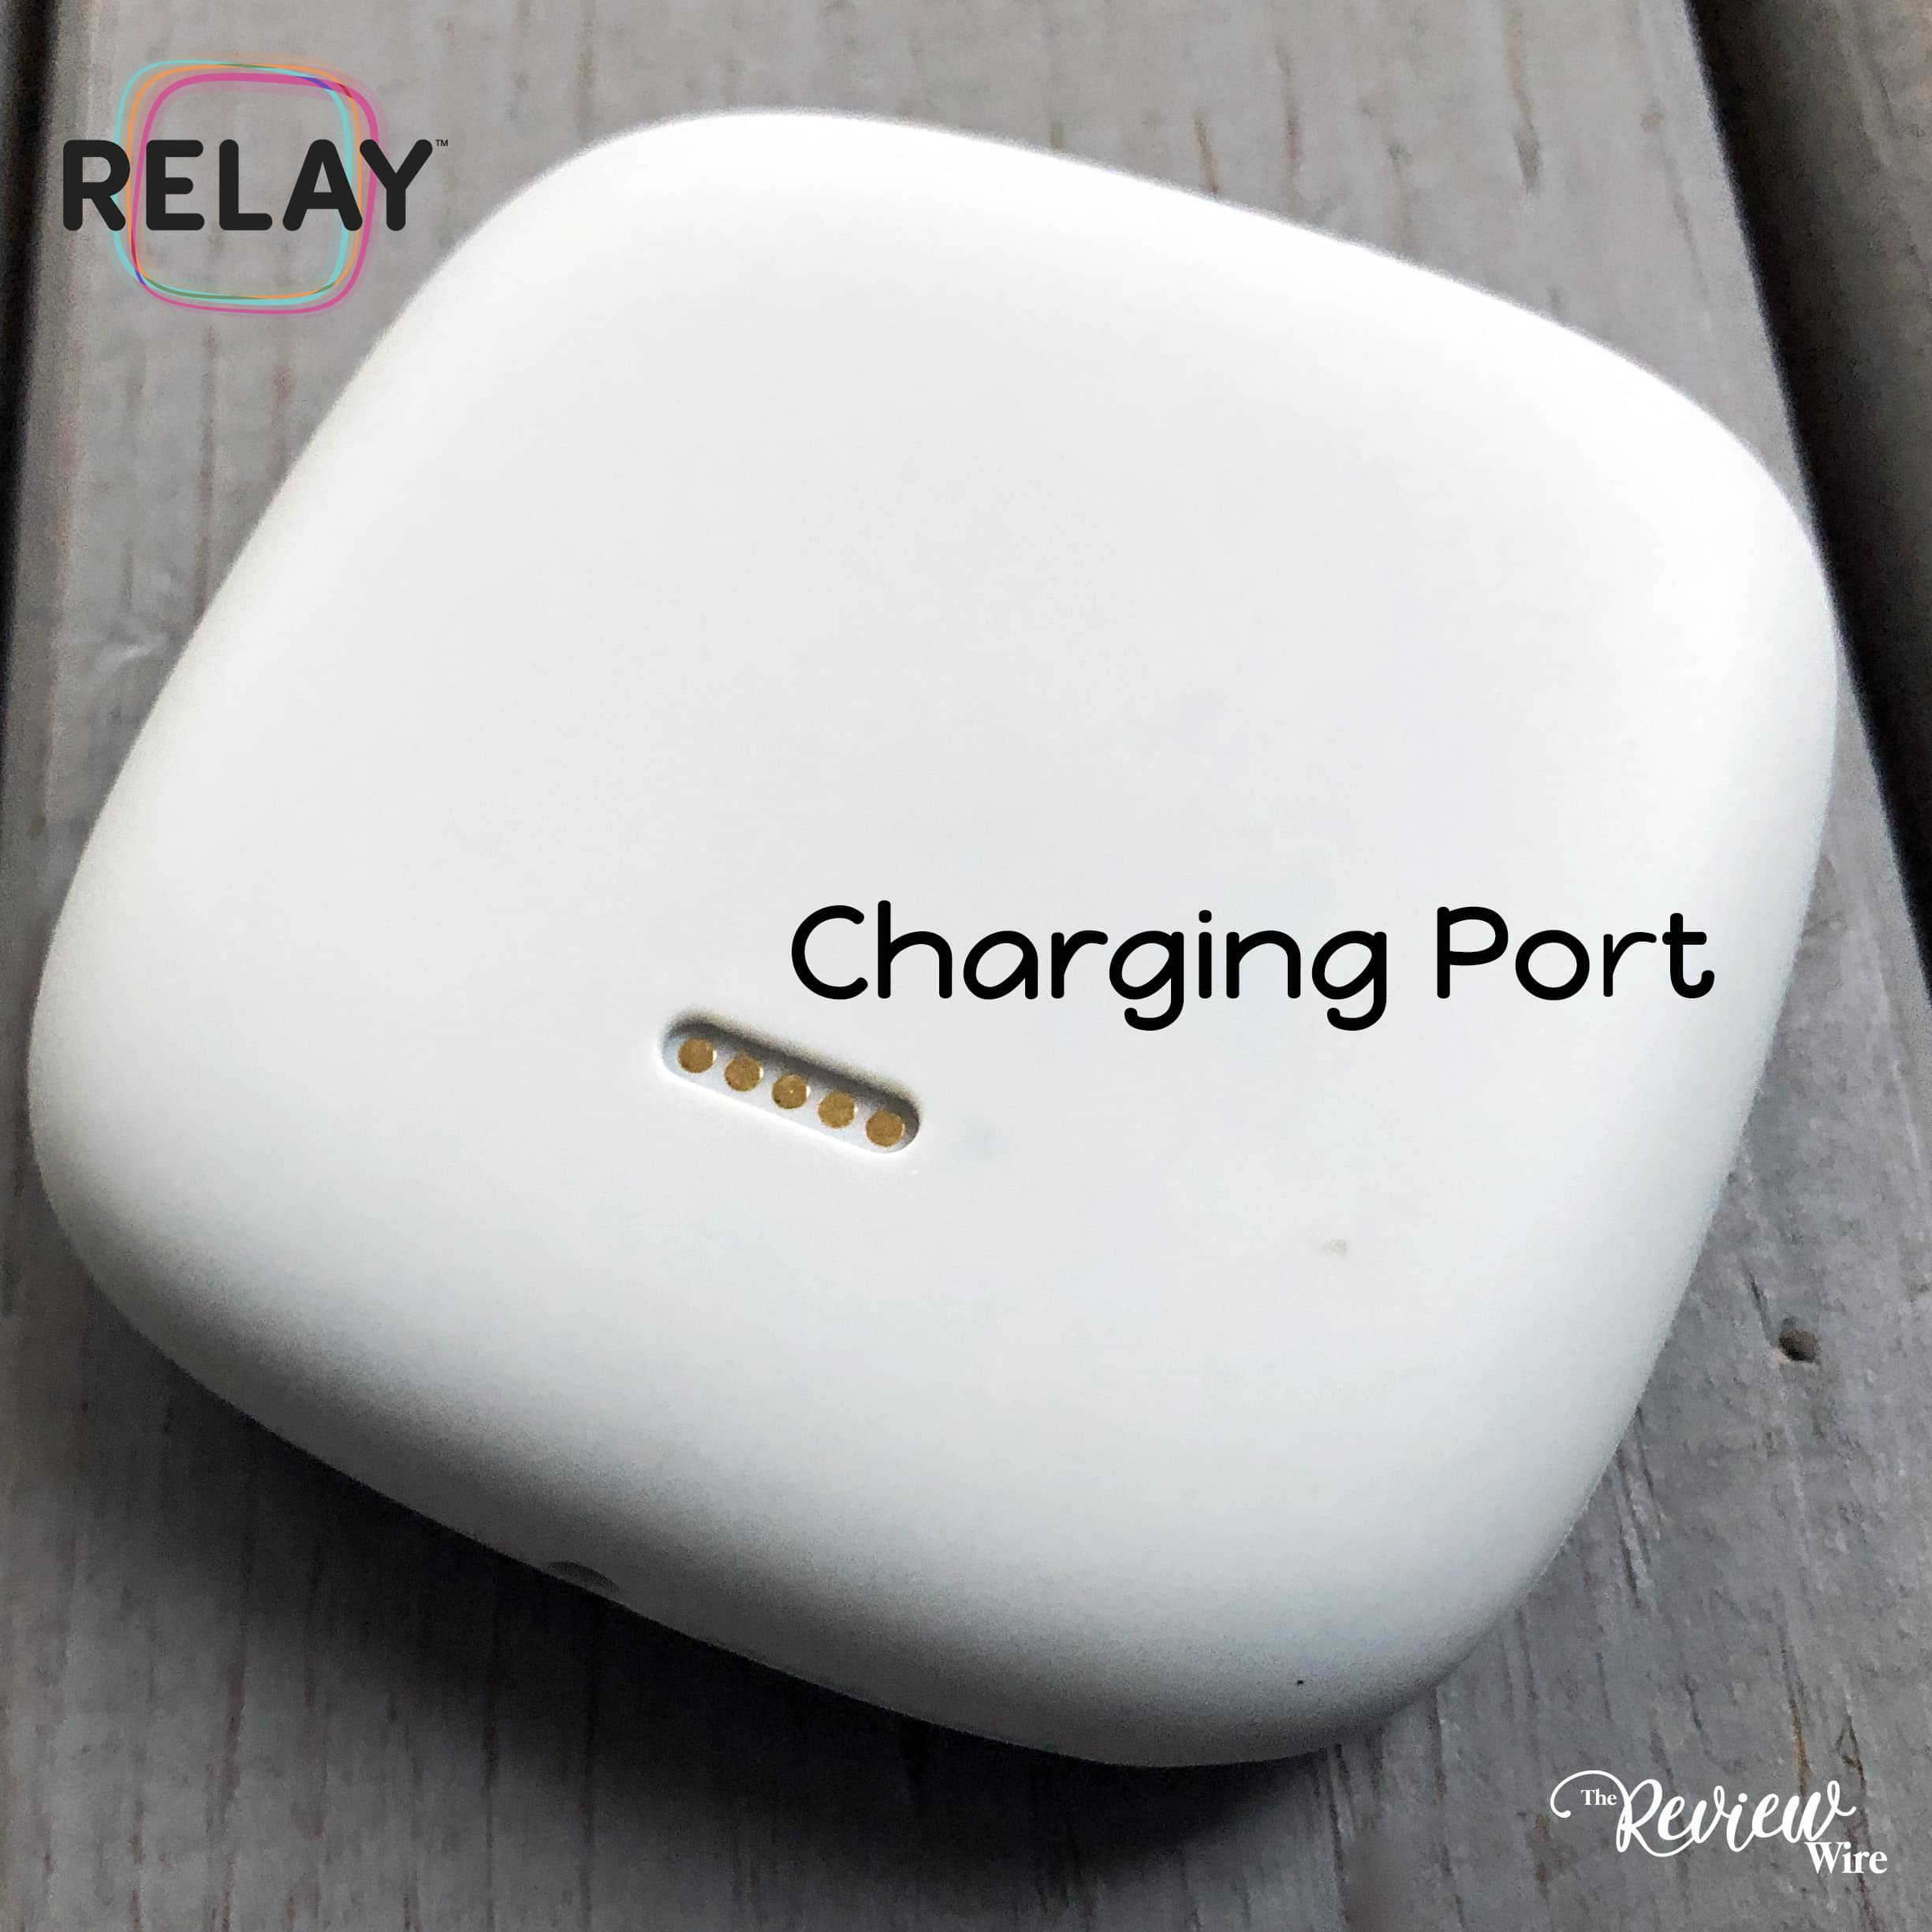 The Review Wire: Relaygo Charging Port